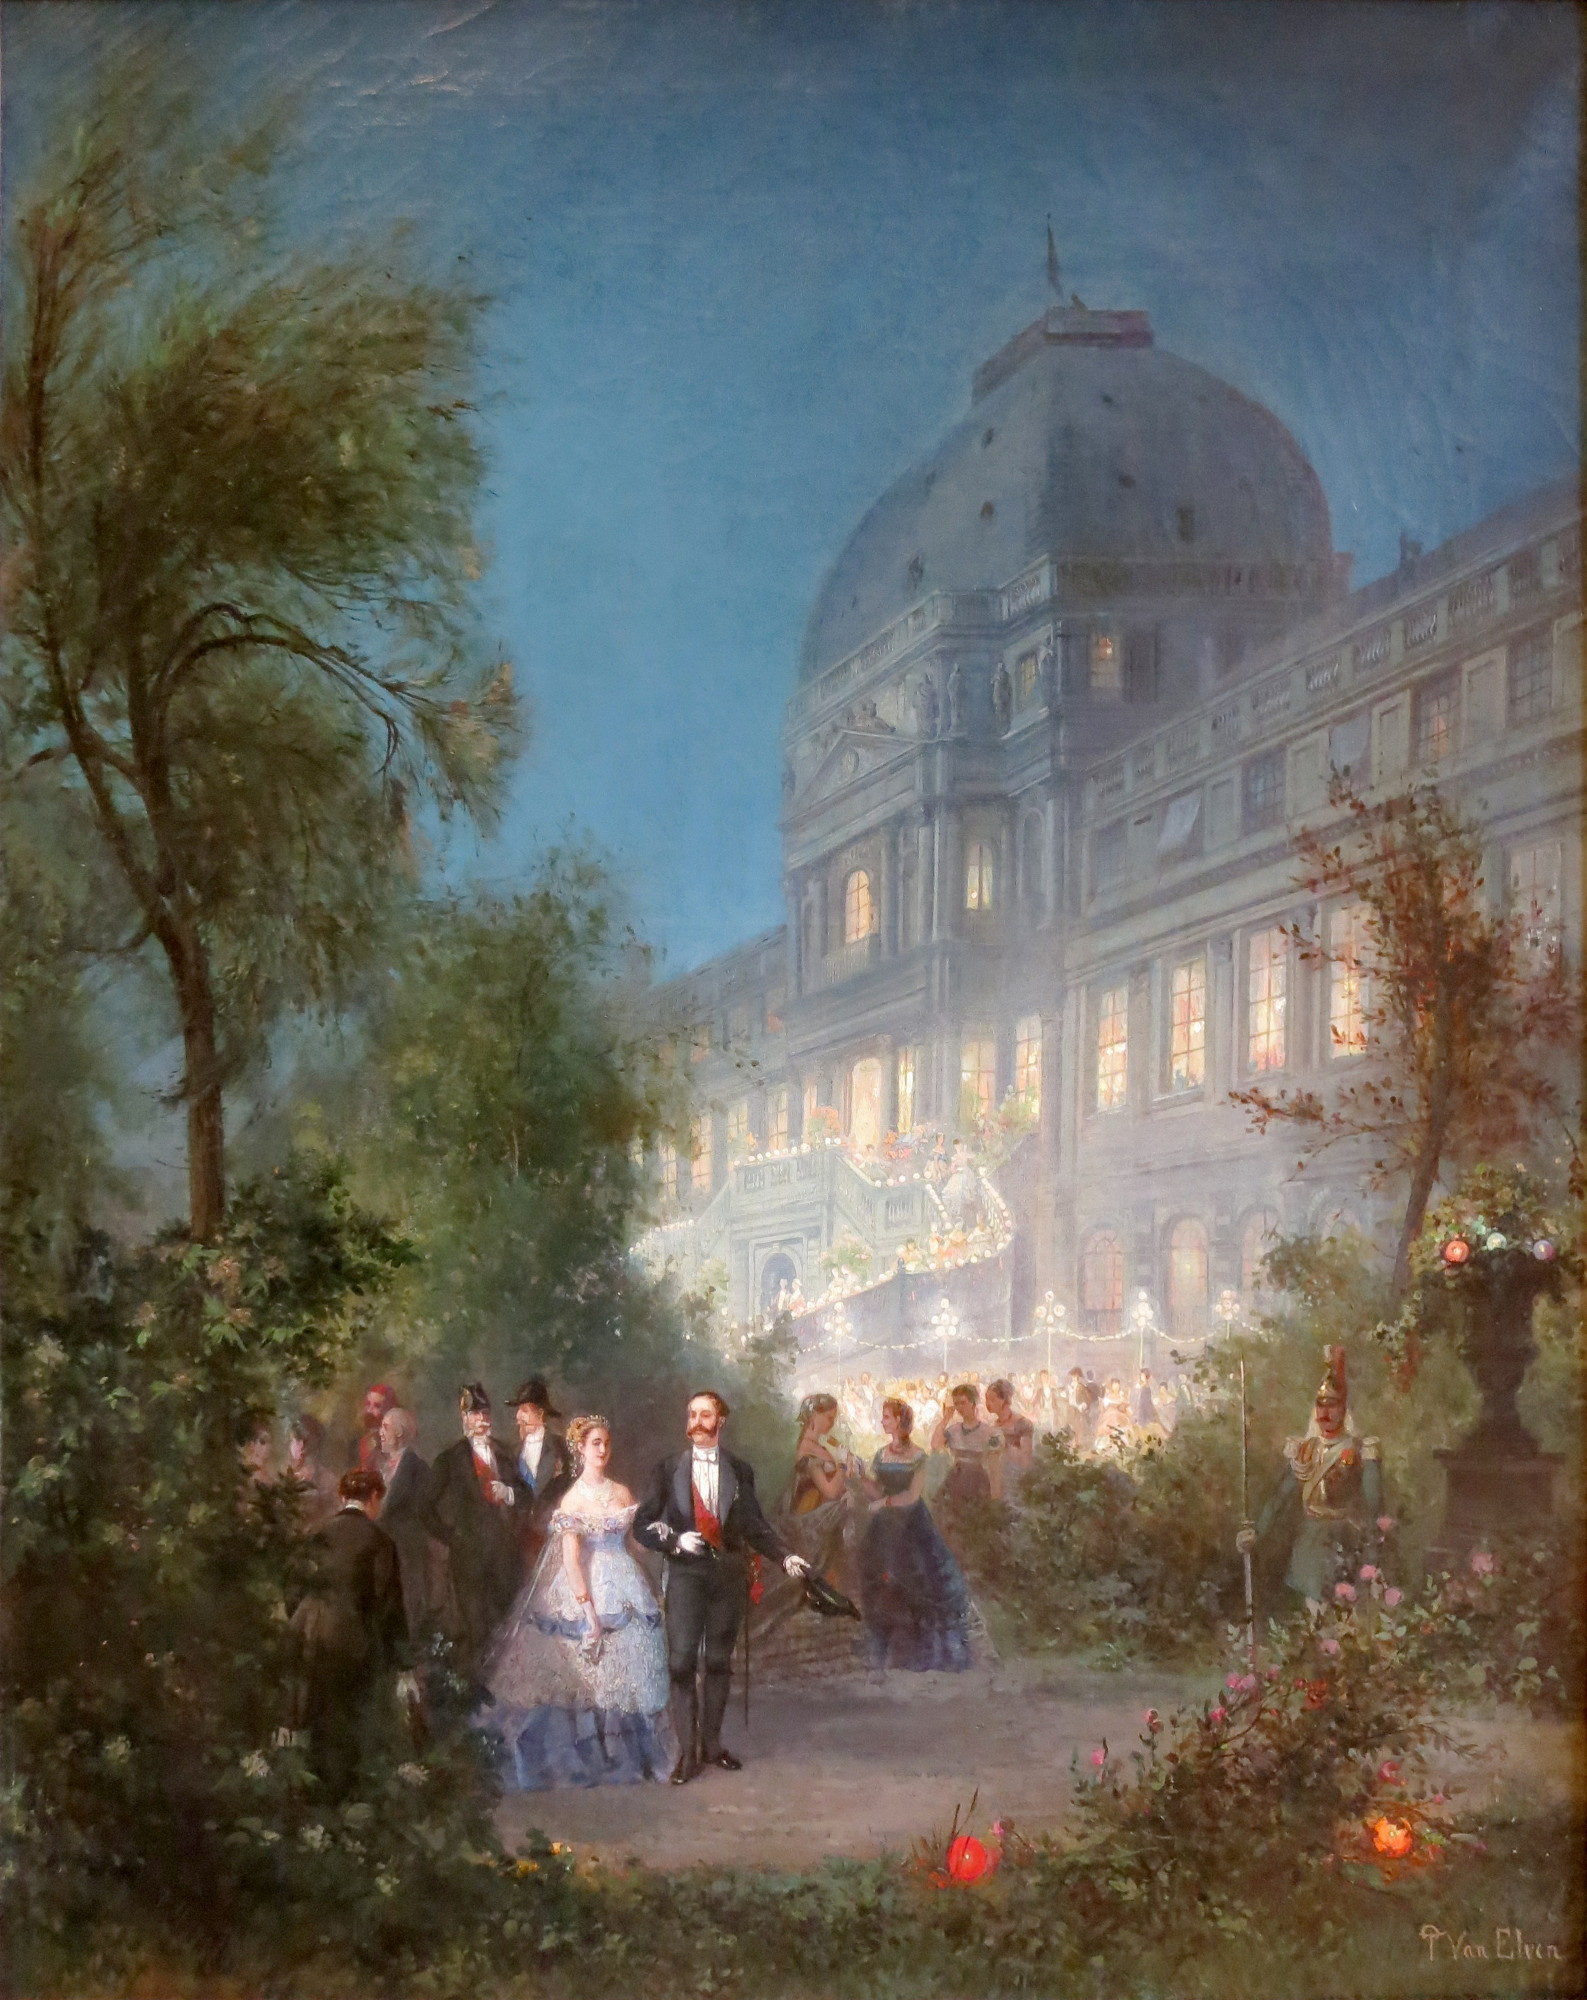 Pierre Tetar van Elven (1828-1908): The Palace and the Tuileries Gardens.